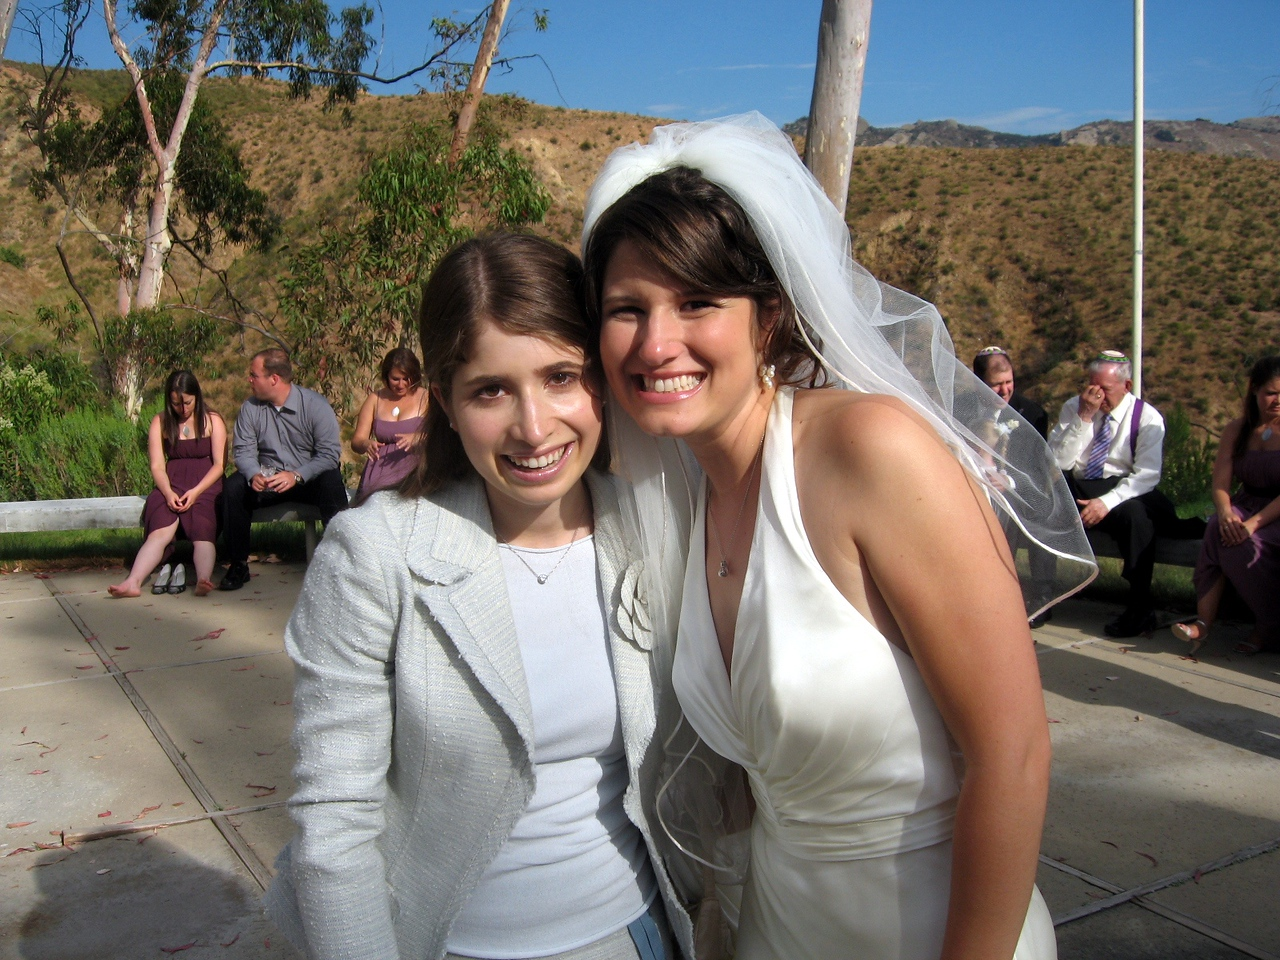 Adeena (cousin of the bride) and Abby